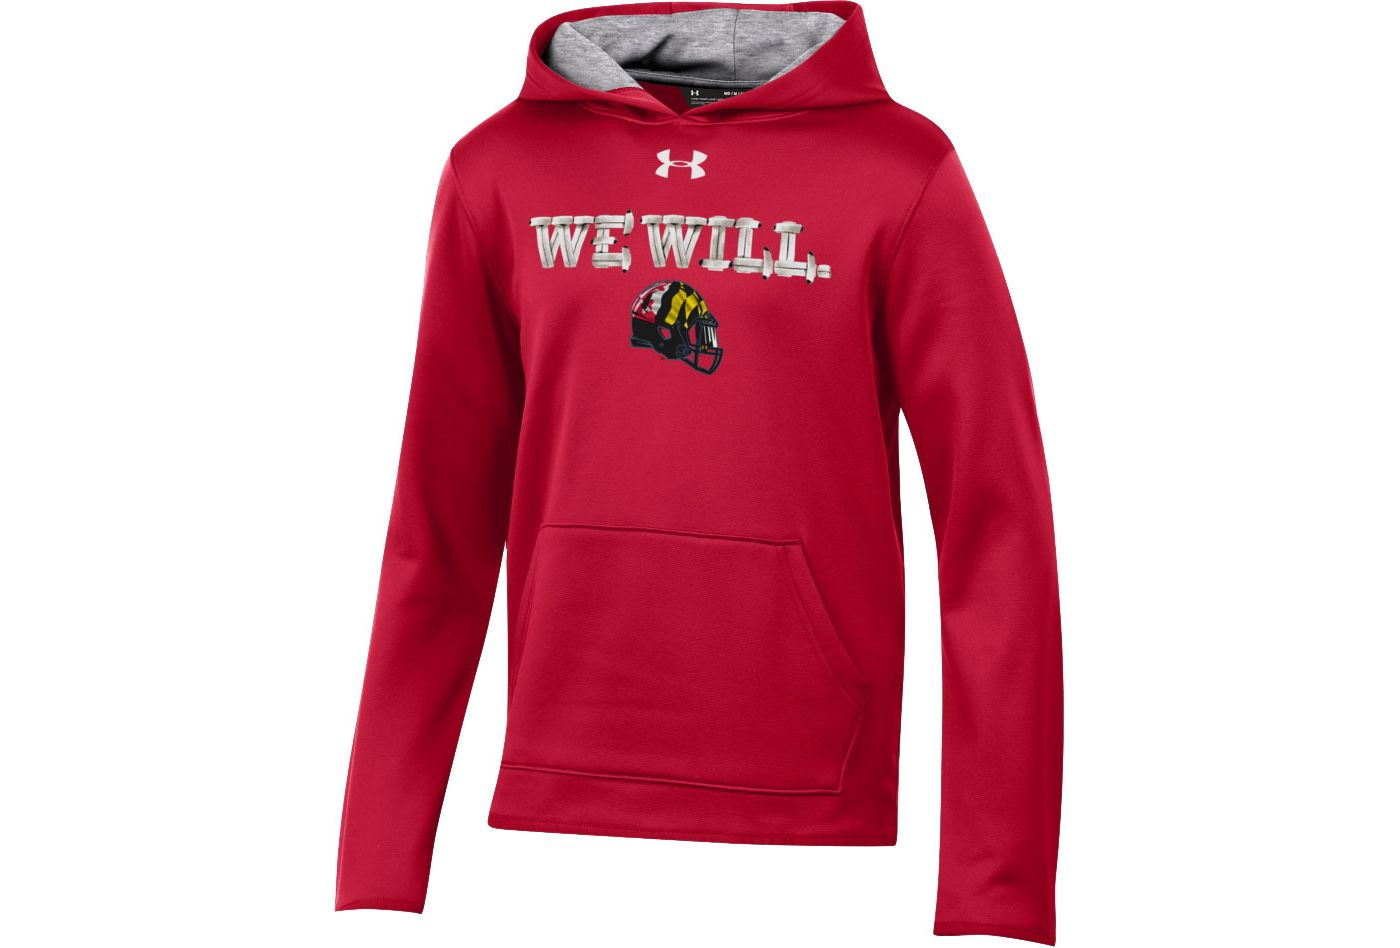 Under Armour Youth Maryland Terrapins Red 'We Will' Armourfleece Performance Football Hoodie